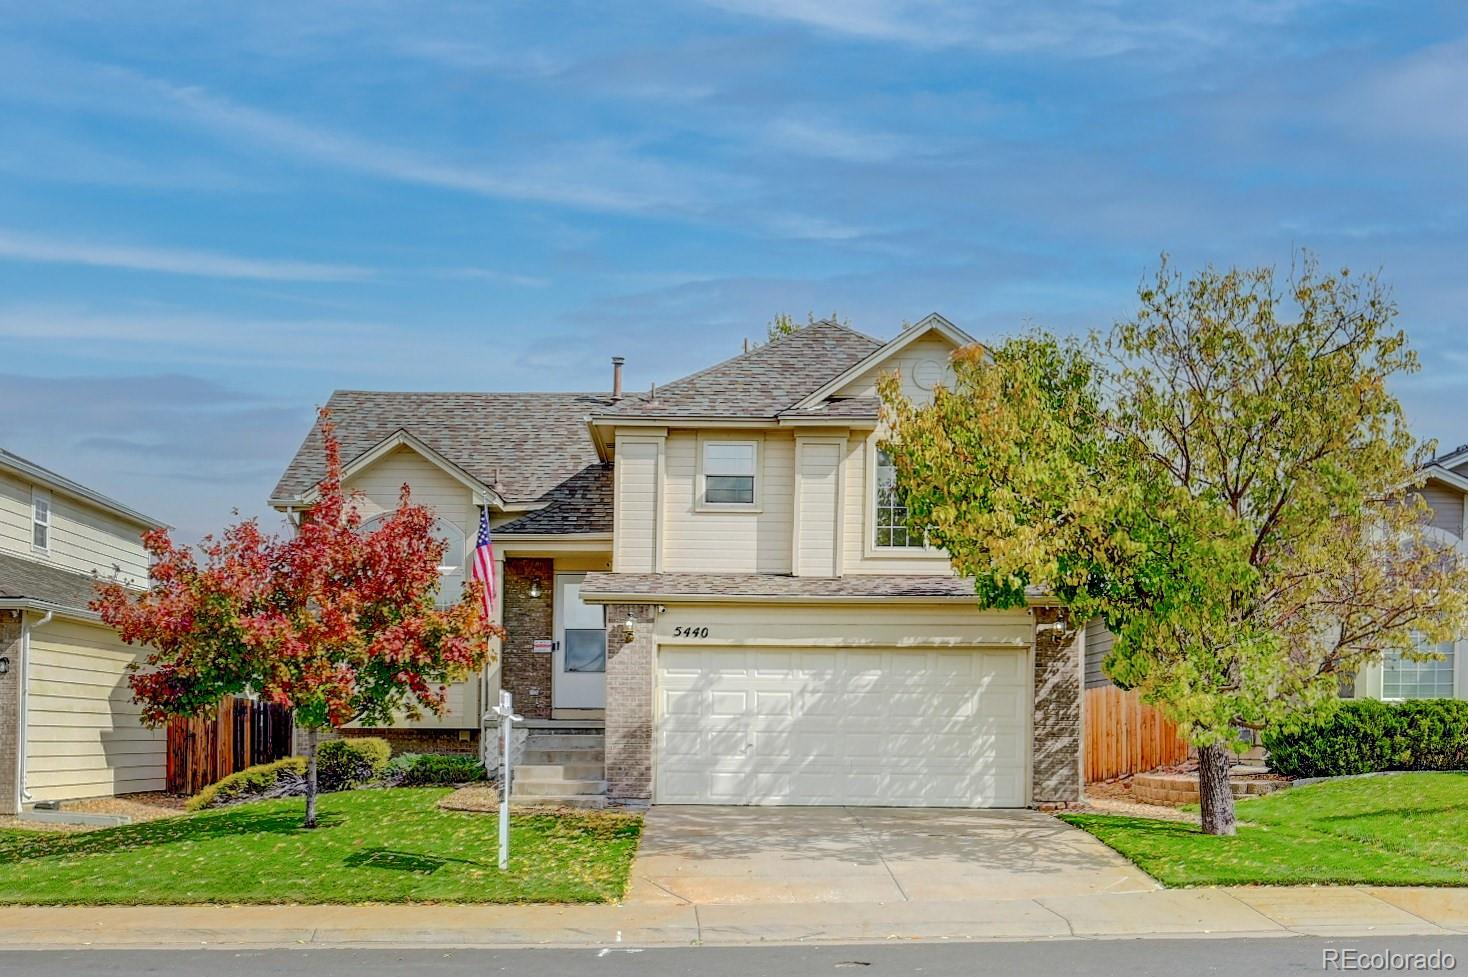 Great home in Saddle Rock Ridge neighborhood! Tri-level home with 3 bedrooms and 2 bathrooms with updates.  Walk into an open and airy floor plan with vaulted ceilings in the living room and kitchen with room for a dining table.  Kitchen opens up to the family room with a fireplace .  Buyers have a chance to finish the basement on their own. Backyard has a nice concrete patio for relaxing or entertaining. This is well taken care of, and ready to go! This family friendly community It's located in Cherry Creek School District and minutes from Southlands shopping, dining and entertainment with quick access to E-470.